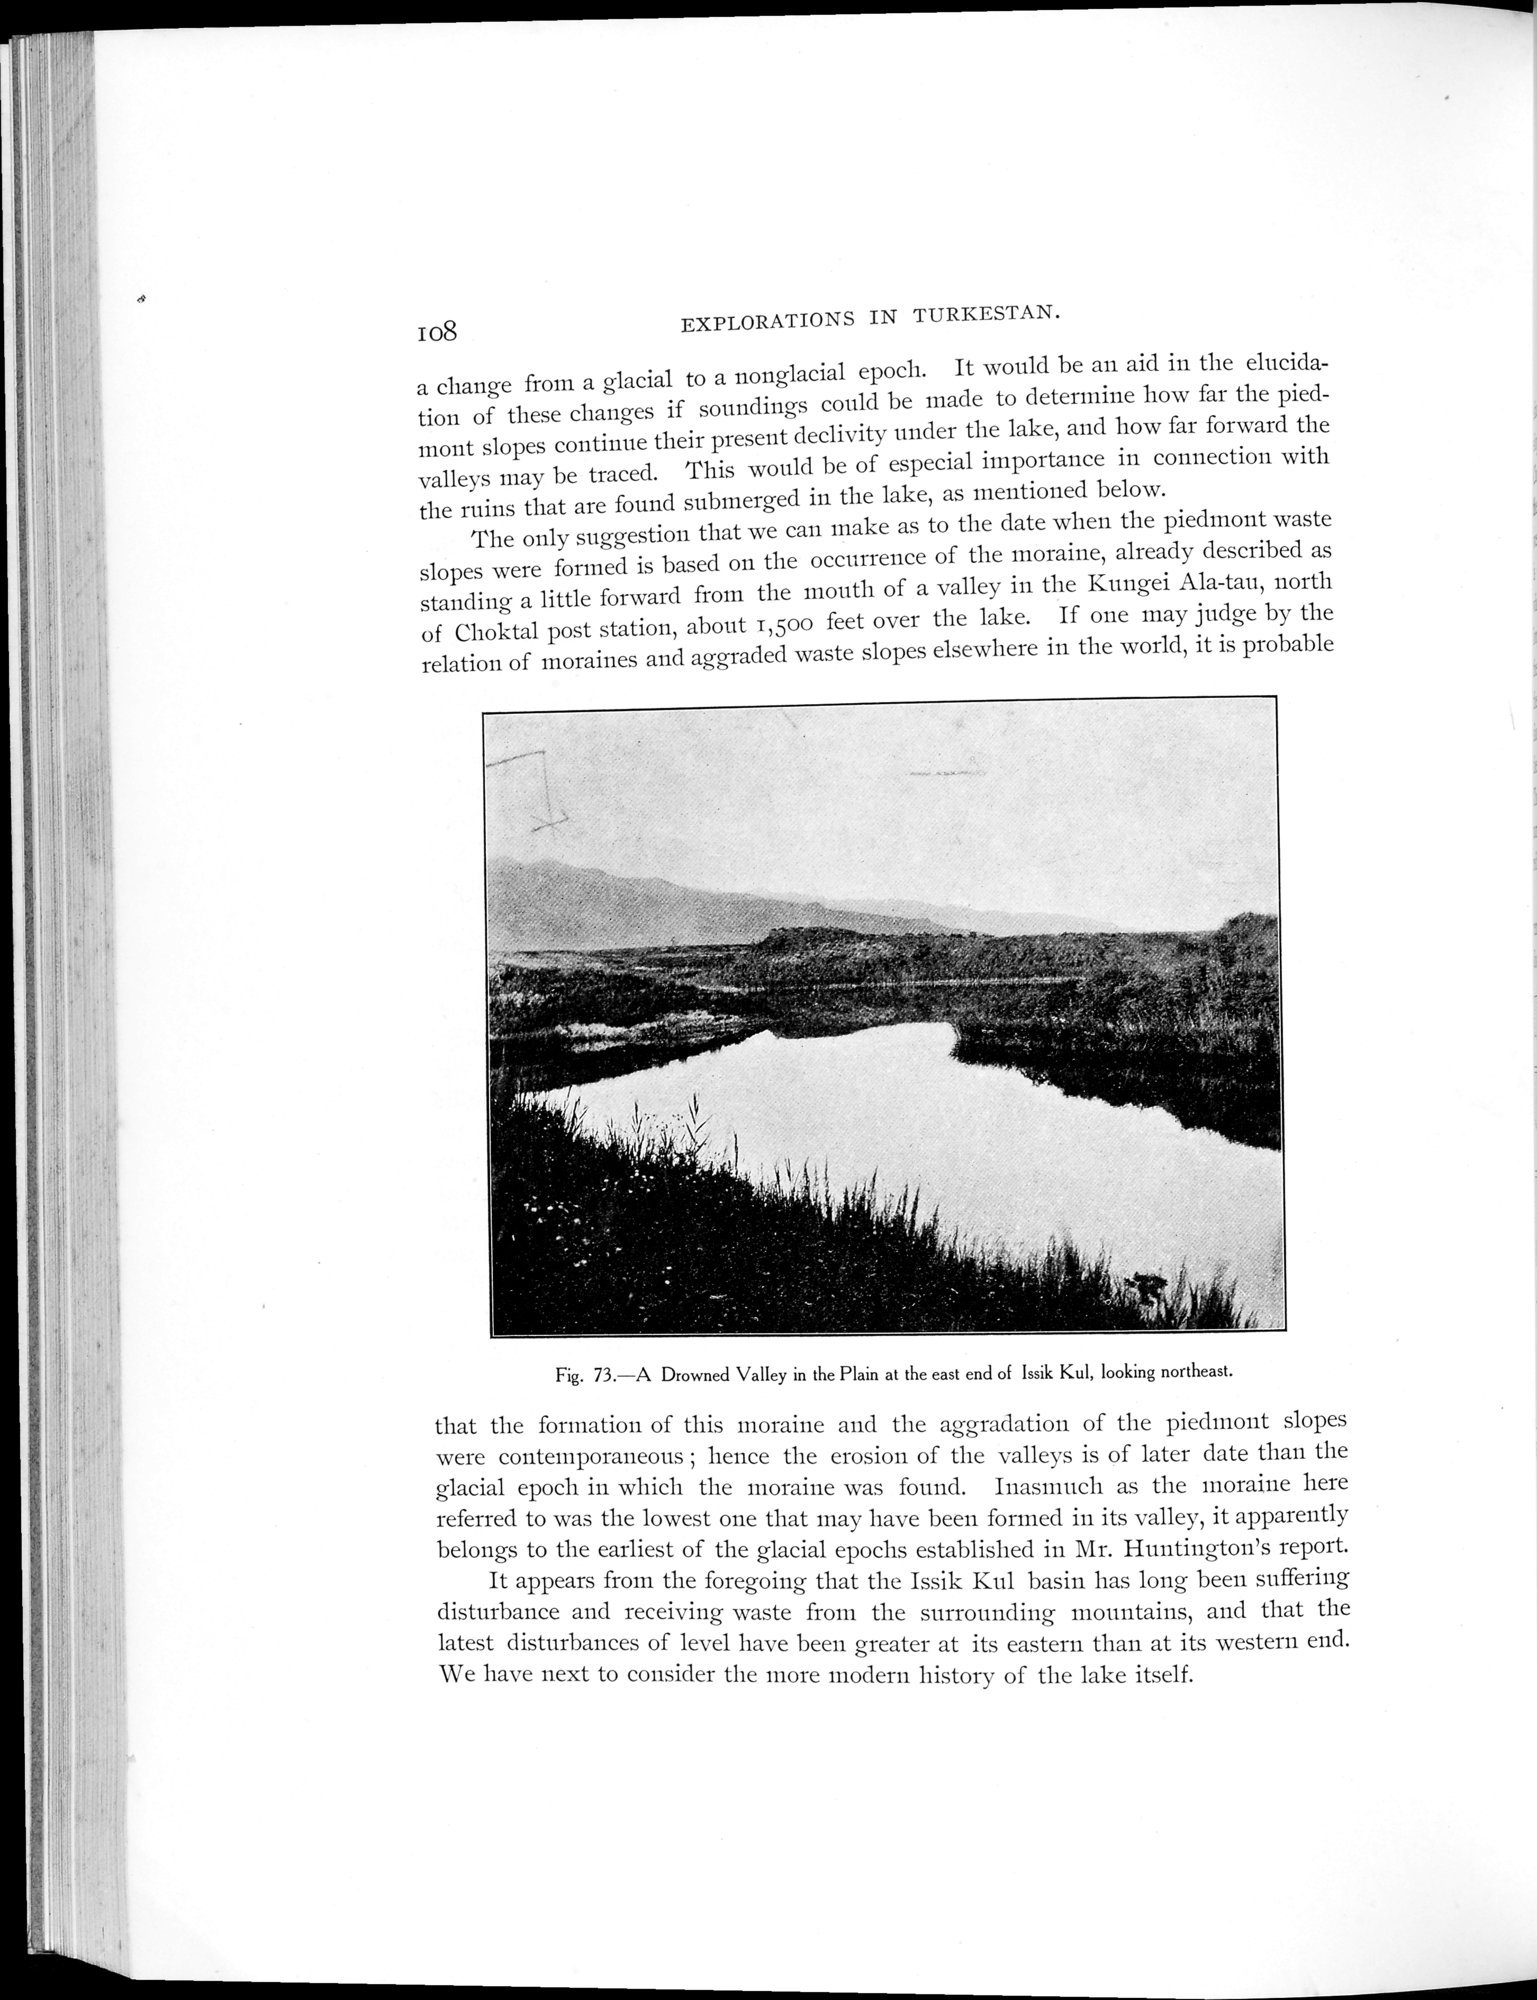 Explorations in Turkestan 1903 : vol.1 / Page 132 (Grayscale High Resolution Image)